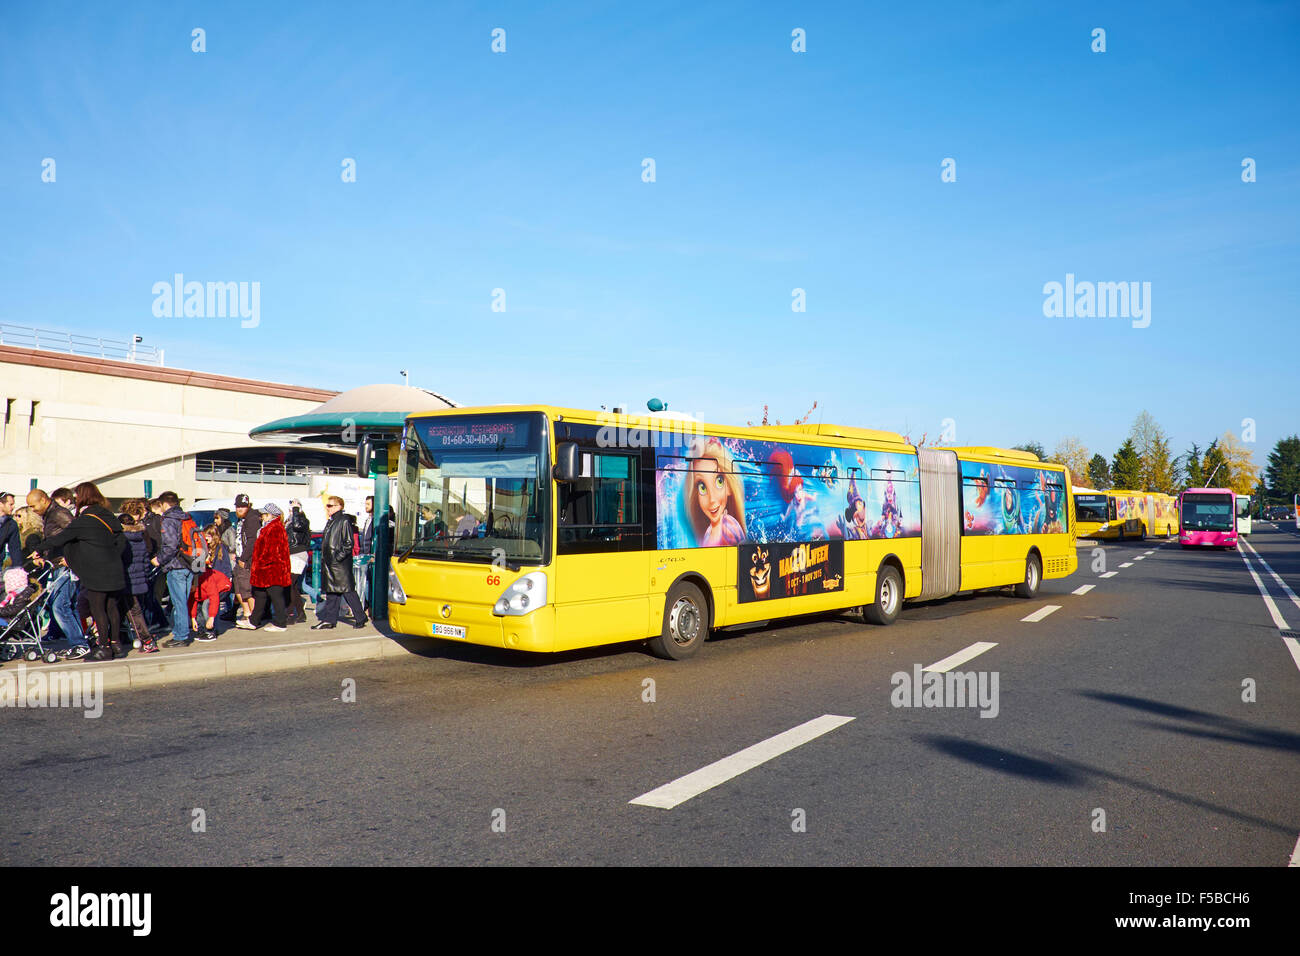 bus station disney village disneyland paris marne la vallee chessy stock photo royalty free. Black Bedroom Furniture Sets. Home Design Ideas